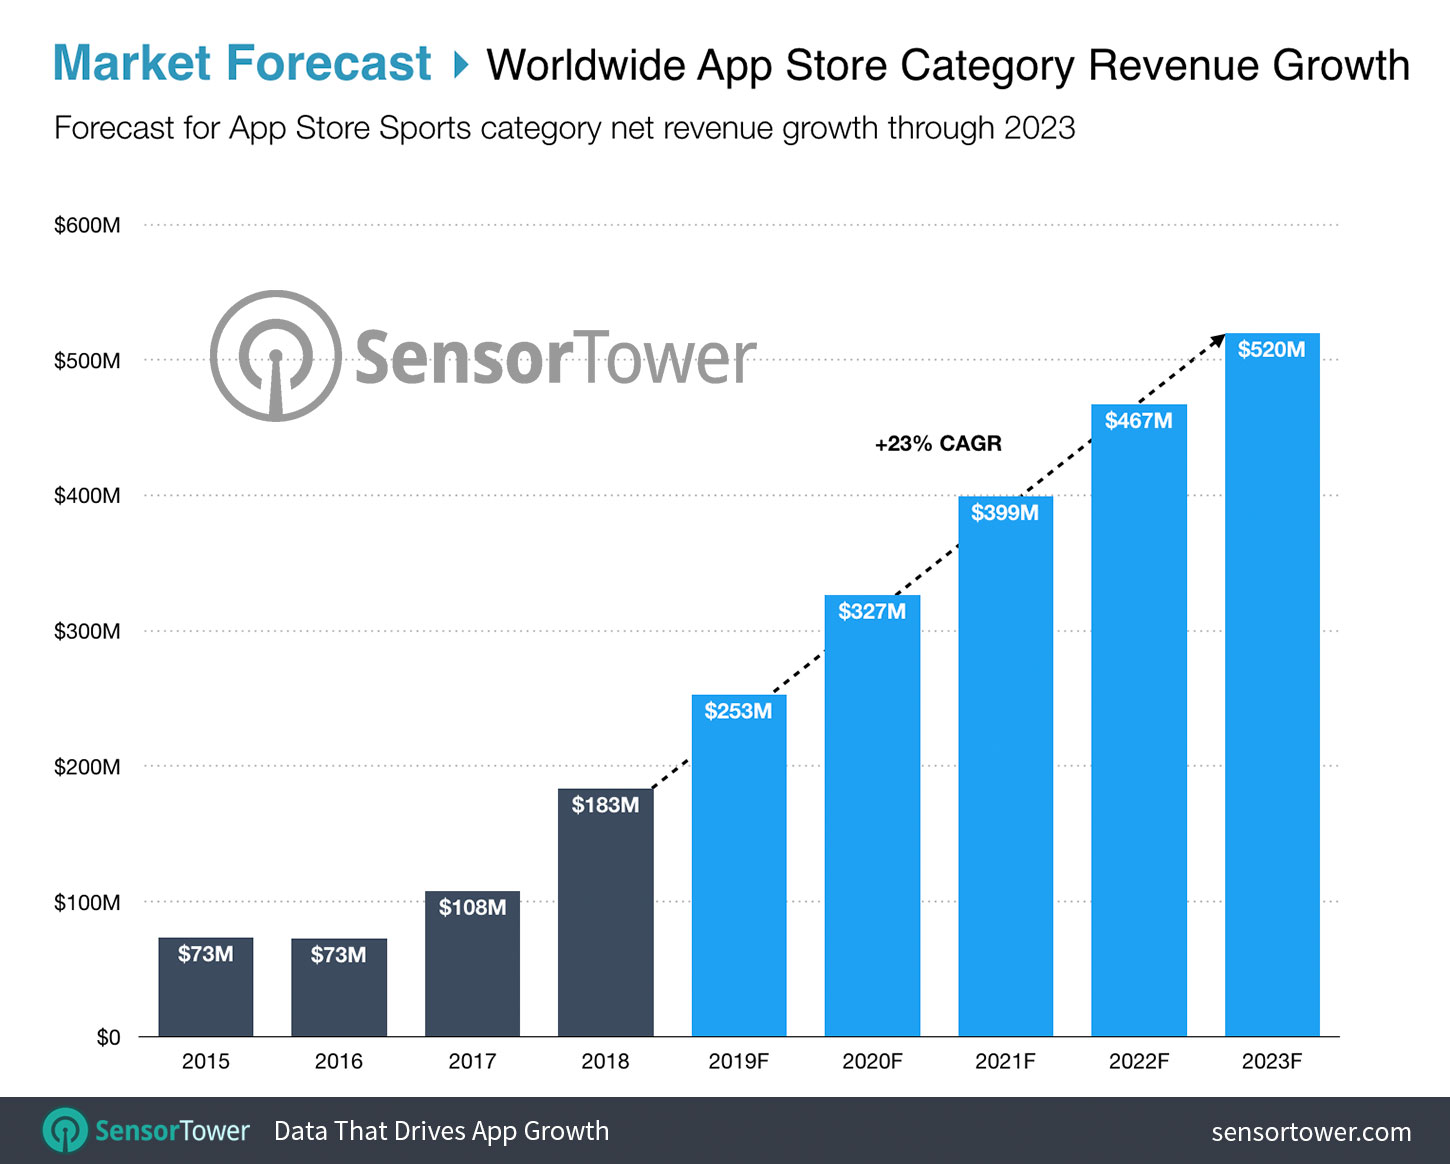 Worldwide Sports Revenue Growth Forecast Chart for the App Store